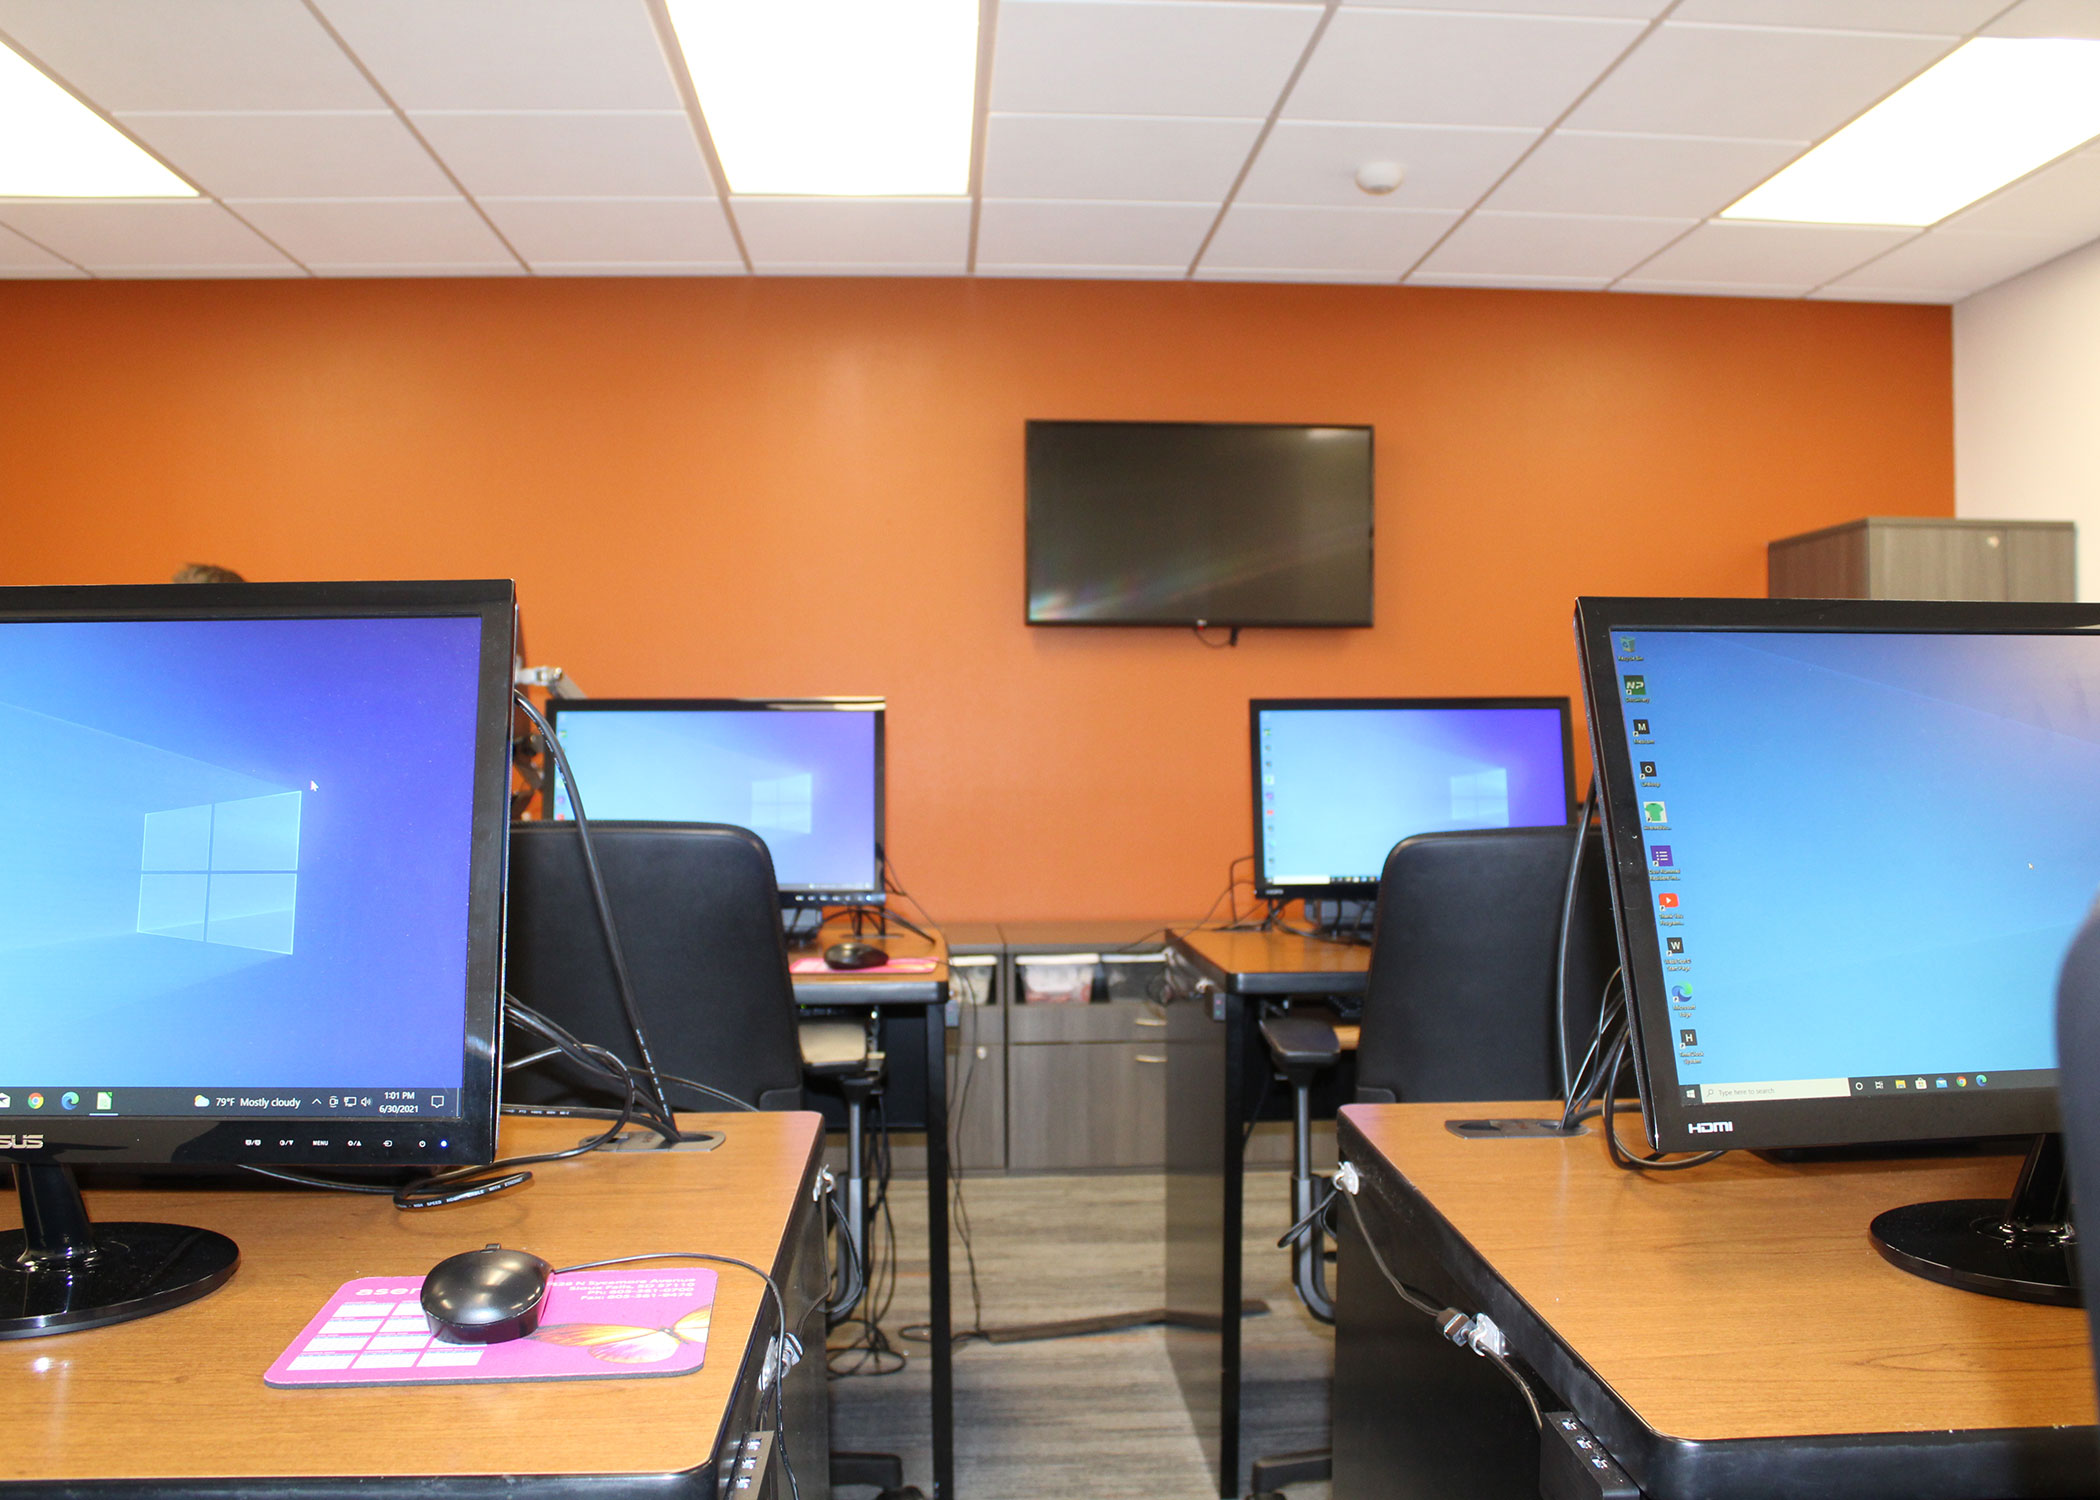 Wilma M. Wagner Computer lab with four stations against a orange wall